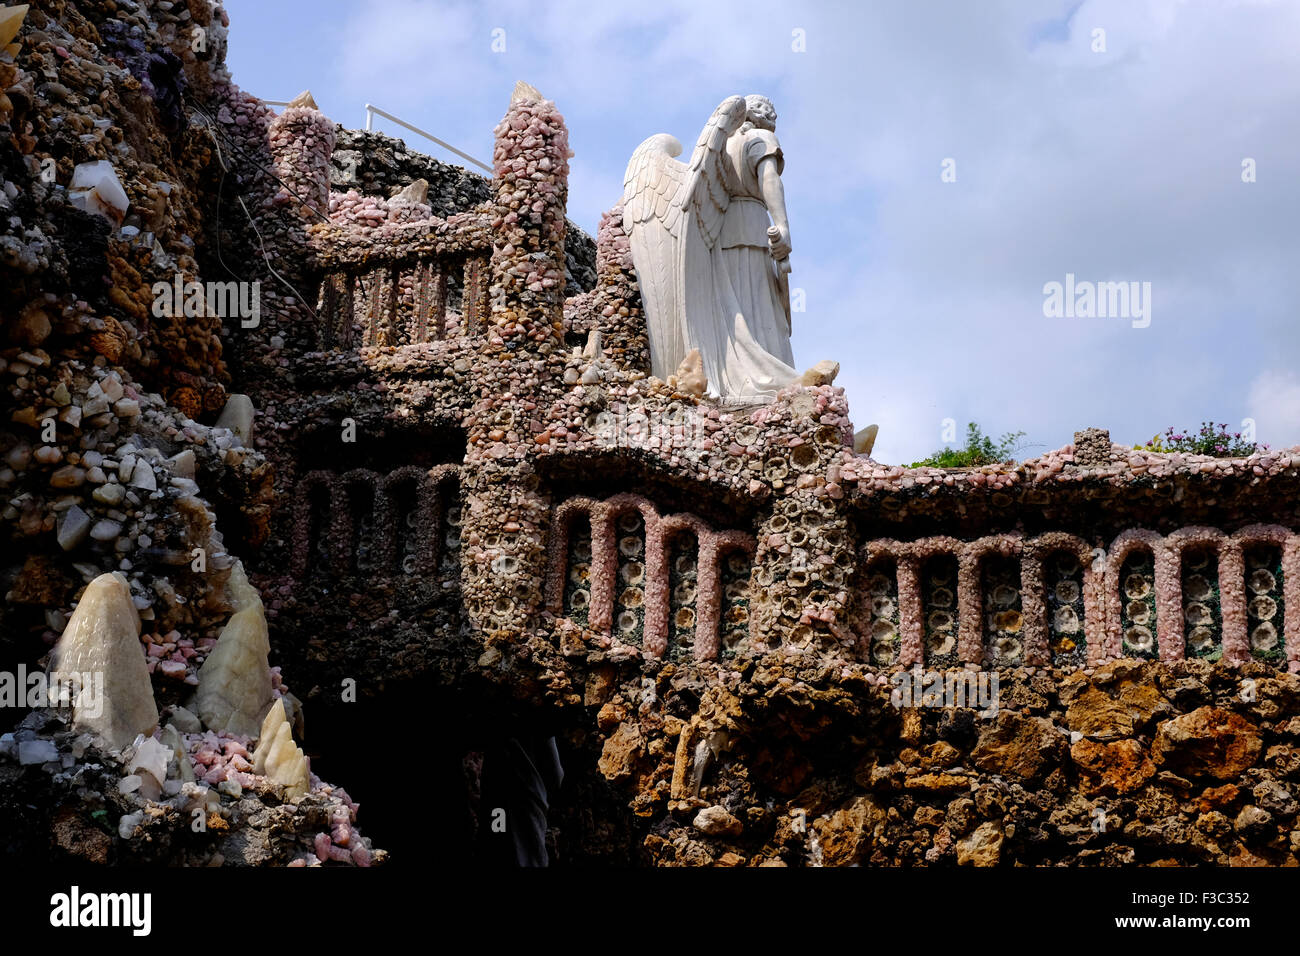 Grotto of the Redemption, West Bend, Iowa - Stock Image